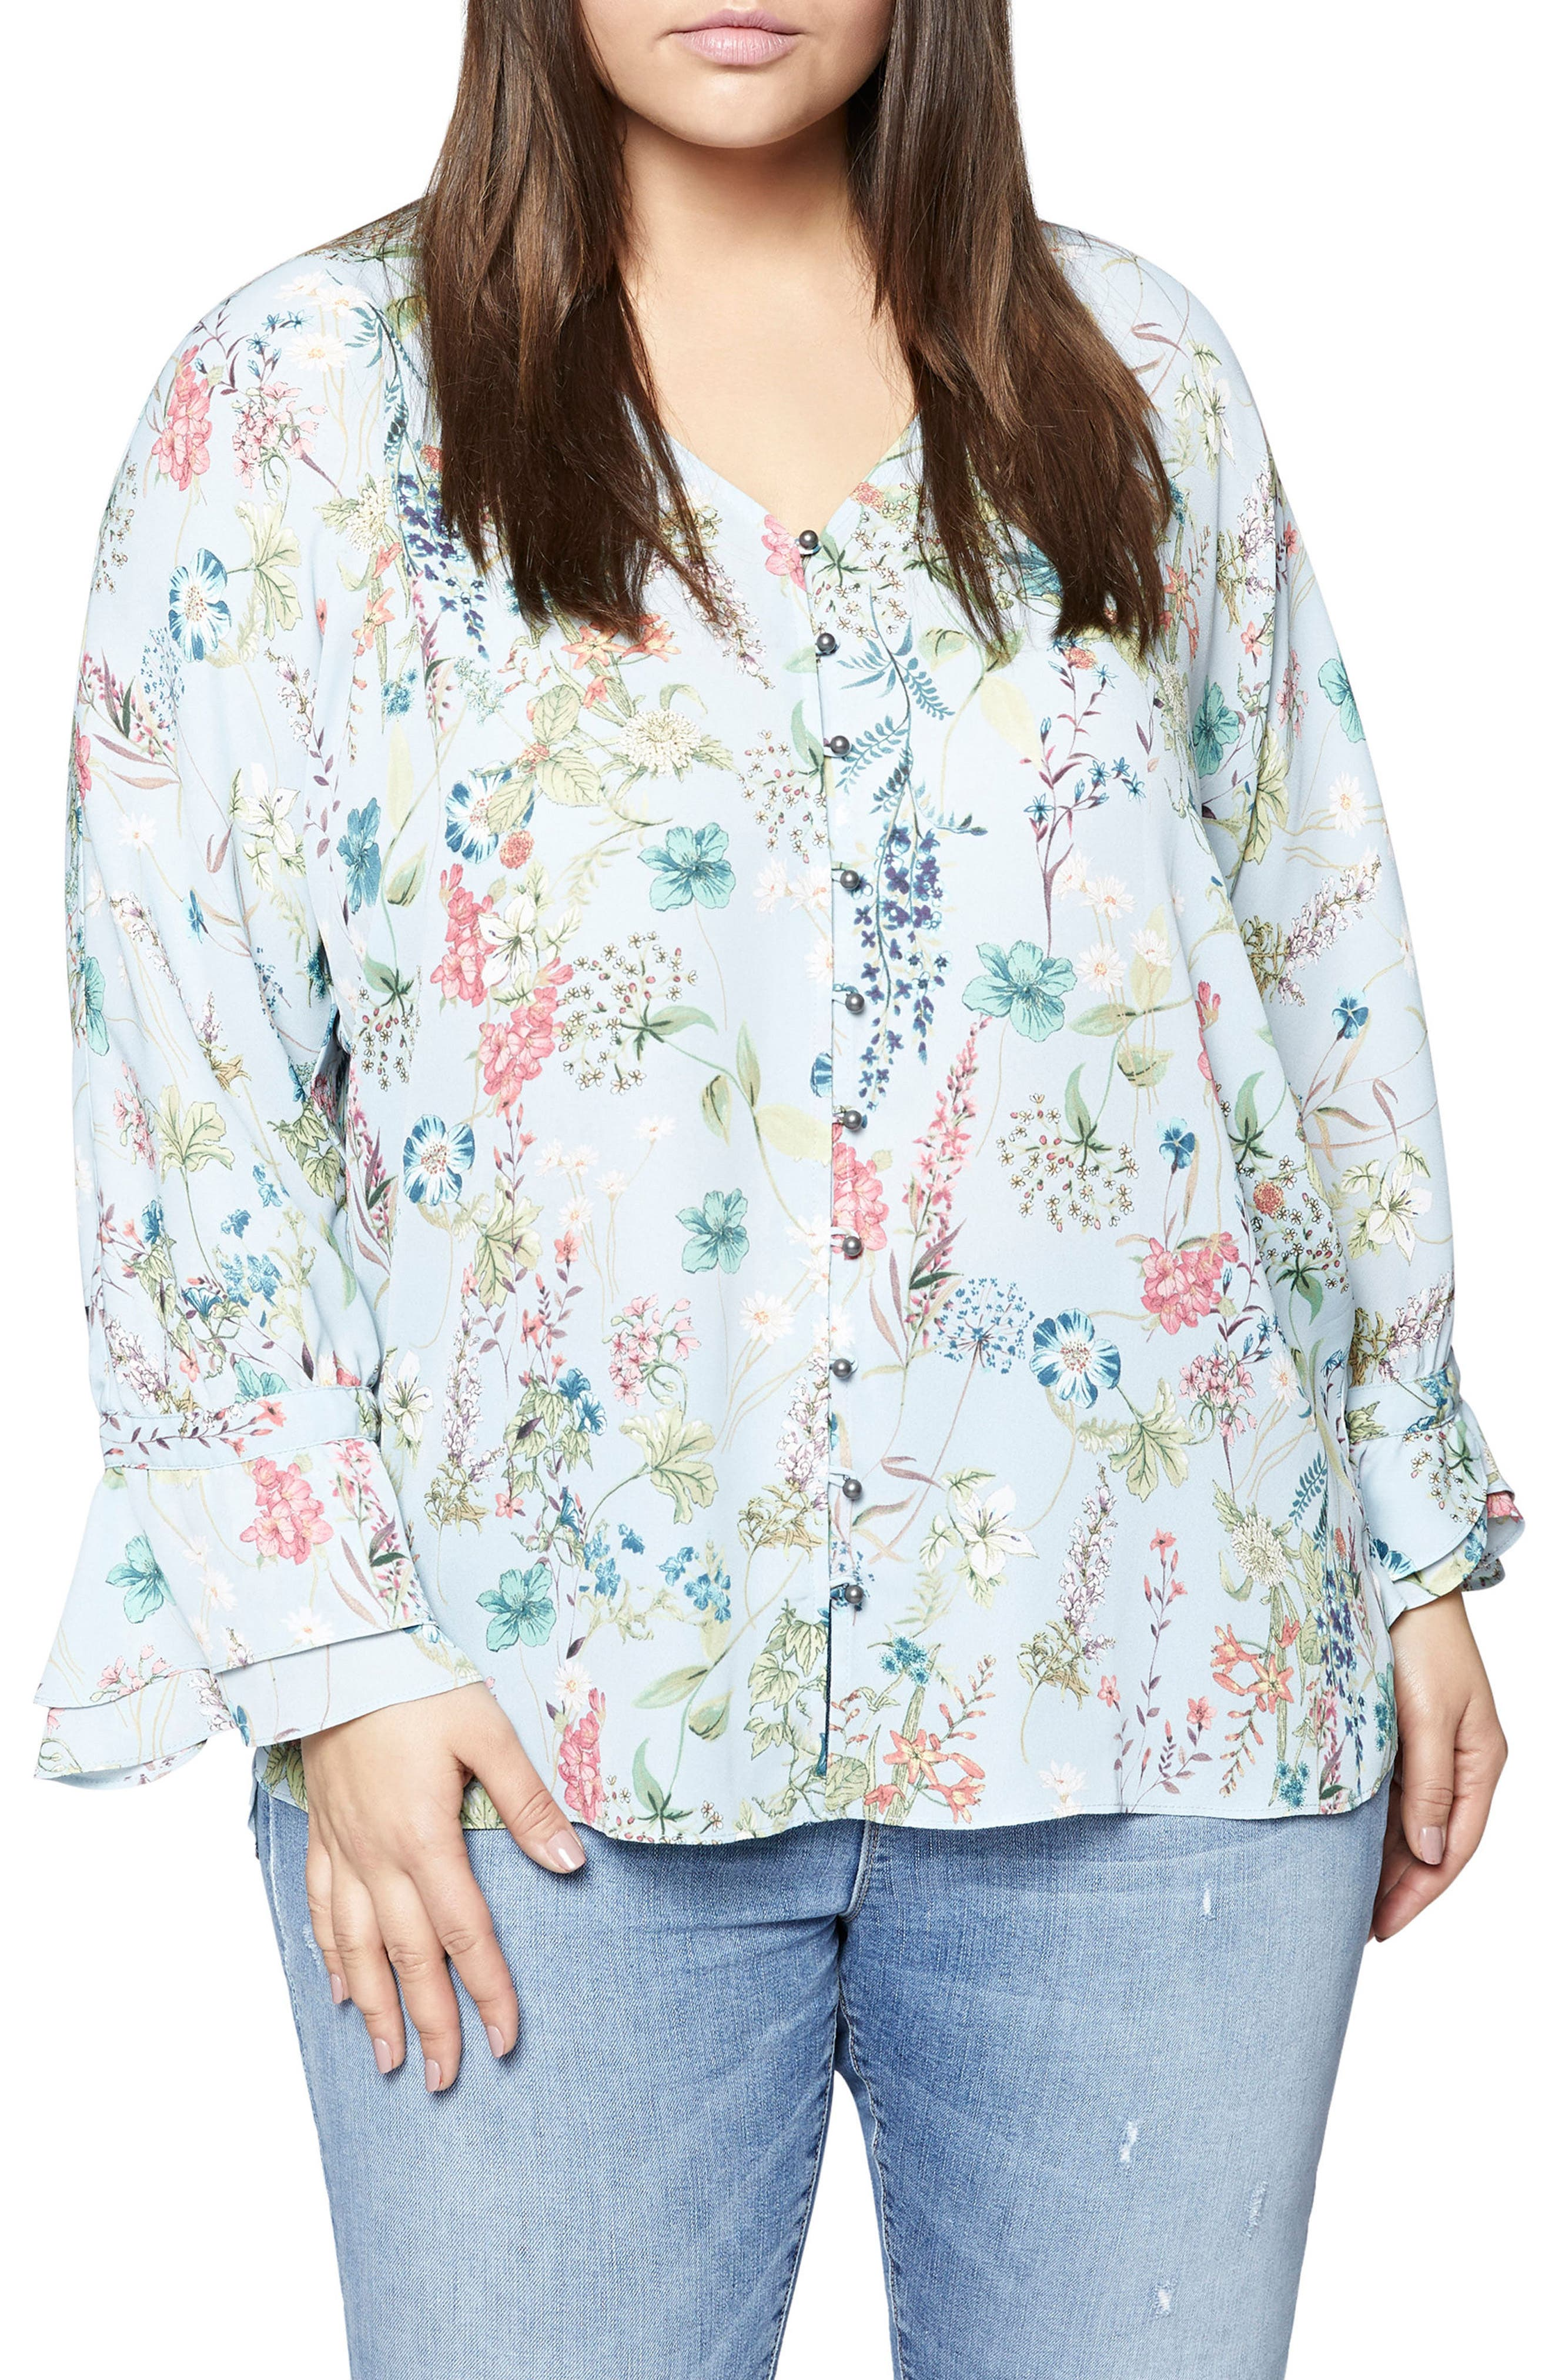 Posey Floral Blouse,                             Main thumbnail 1, color,                             450